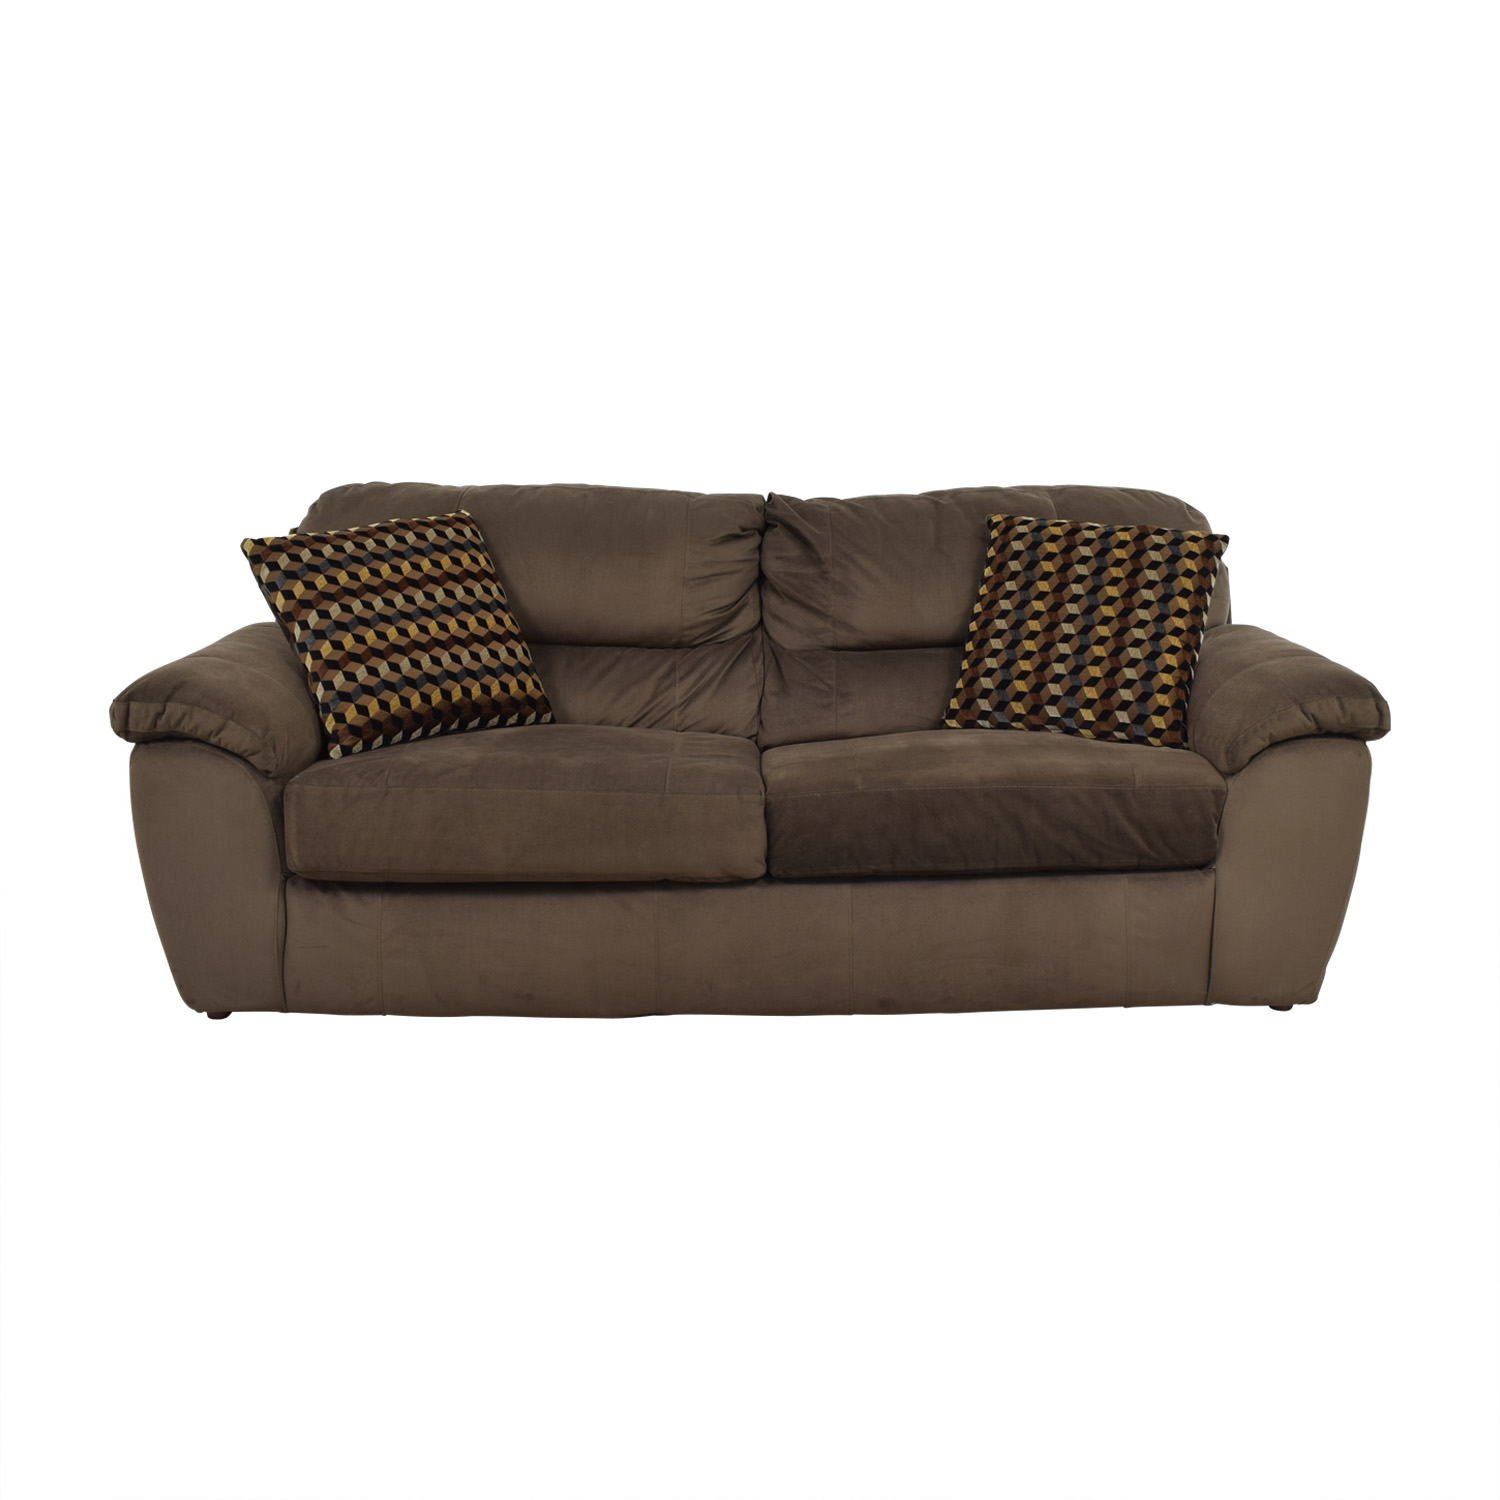 Bobs Furniture Sofa Bed Bobs Futon Roselawnlutheran Thesofa